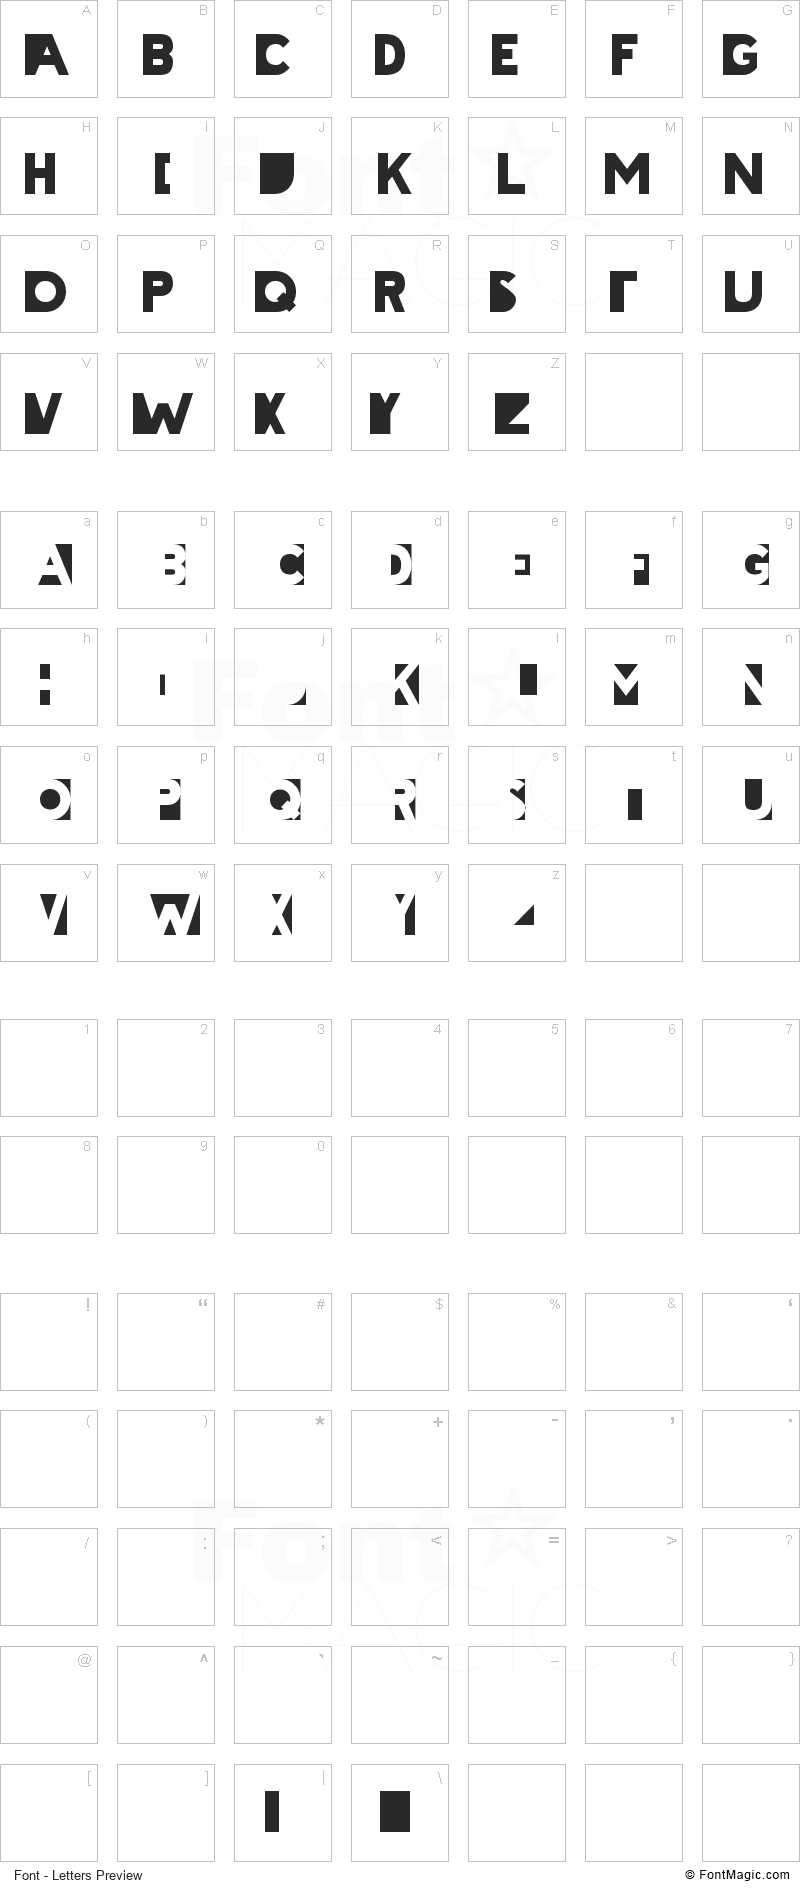 Cheatin Font - All Latters Preview Chart